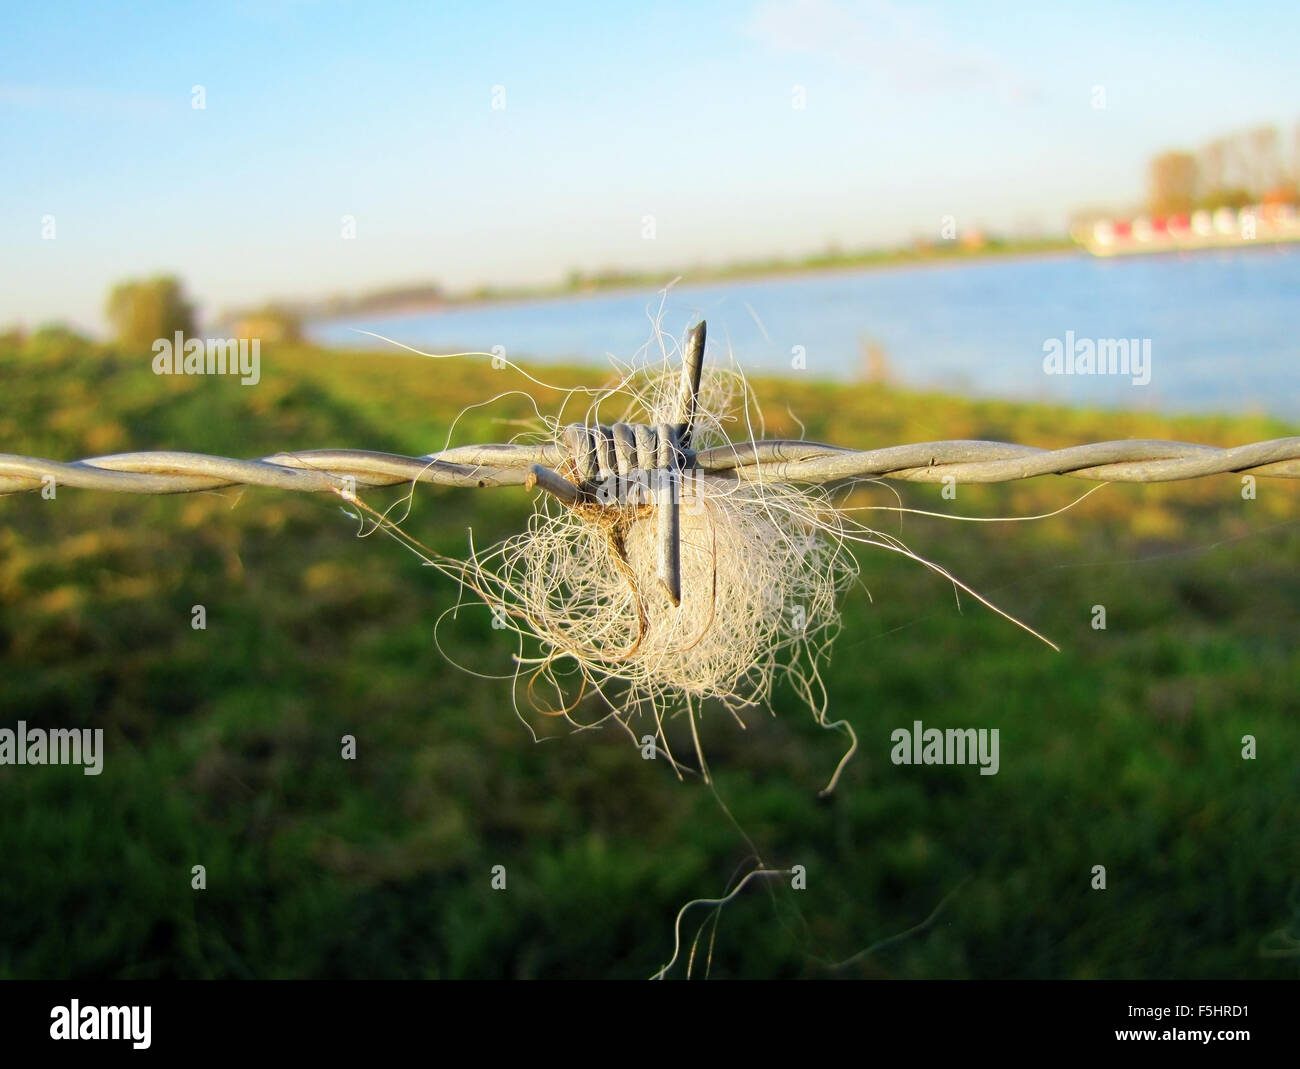 Barb wire fence close up with hair or fur - Stock Image